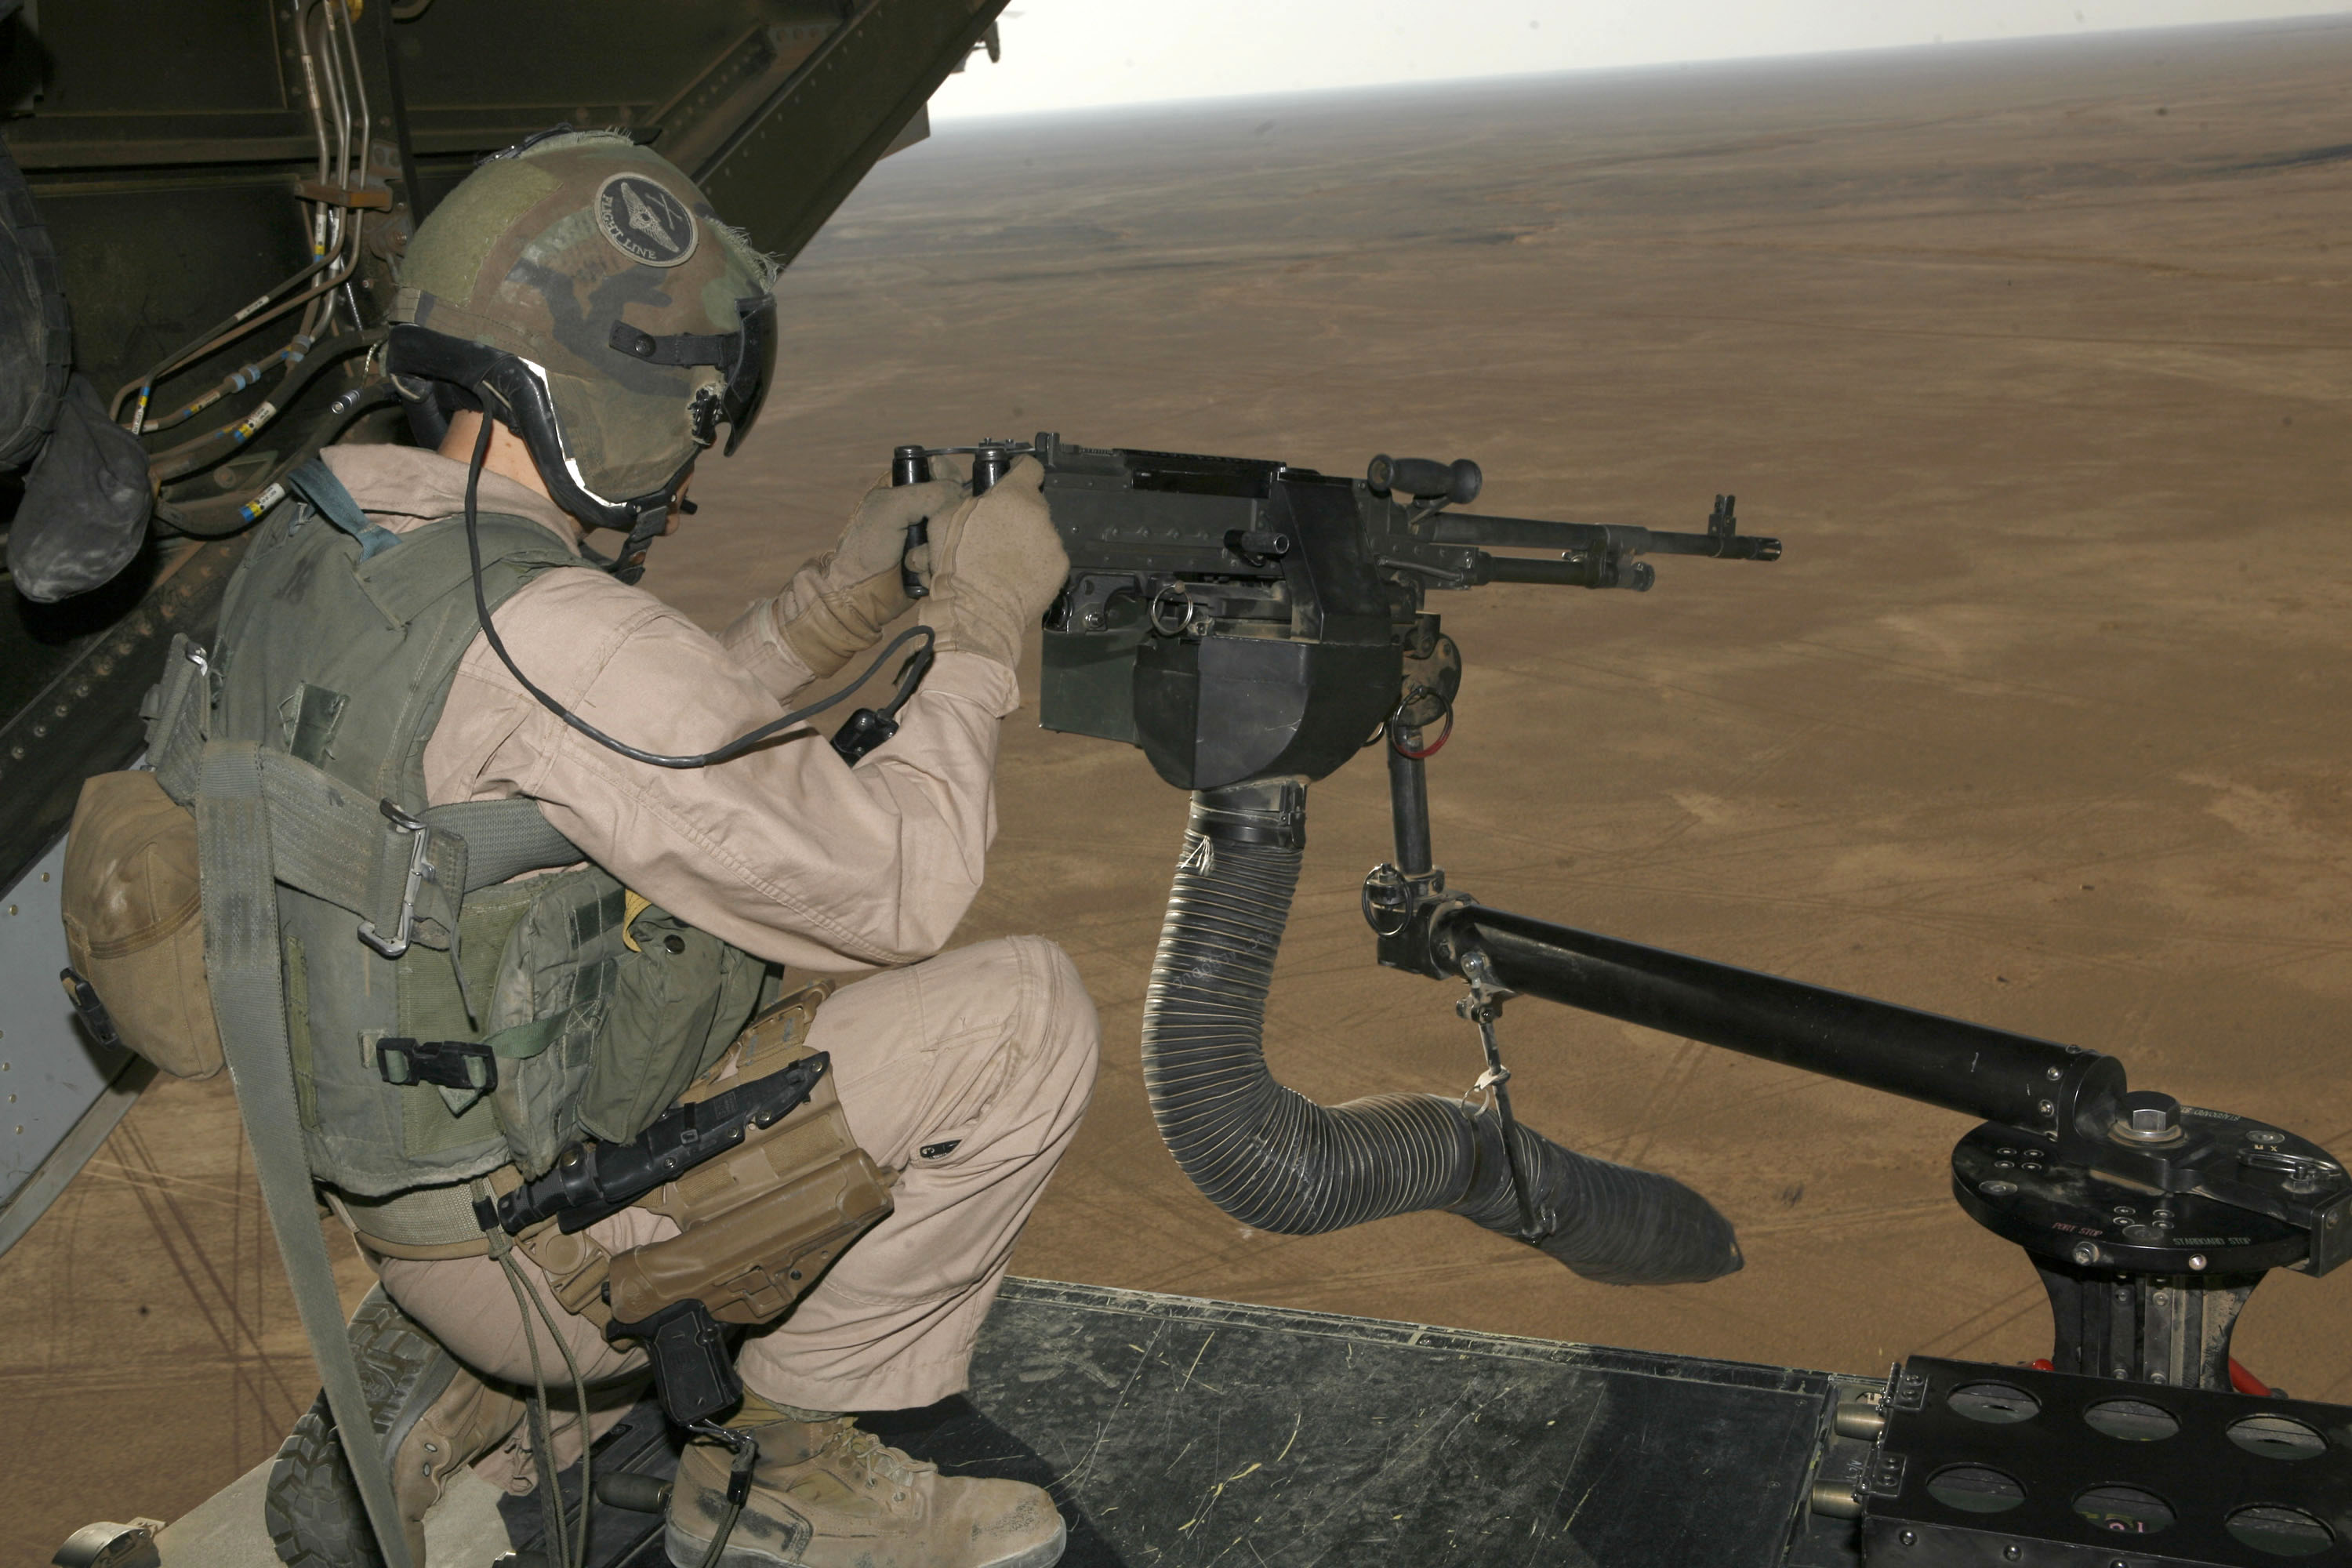 File:V-22 M240 machine gun.jpg - Wikimedia Commons